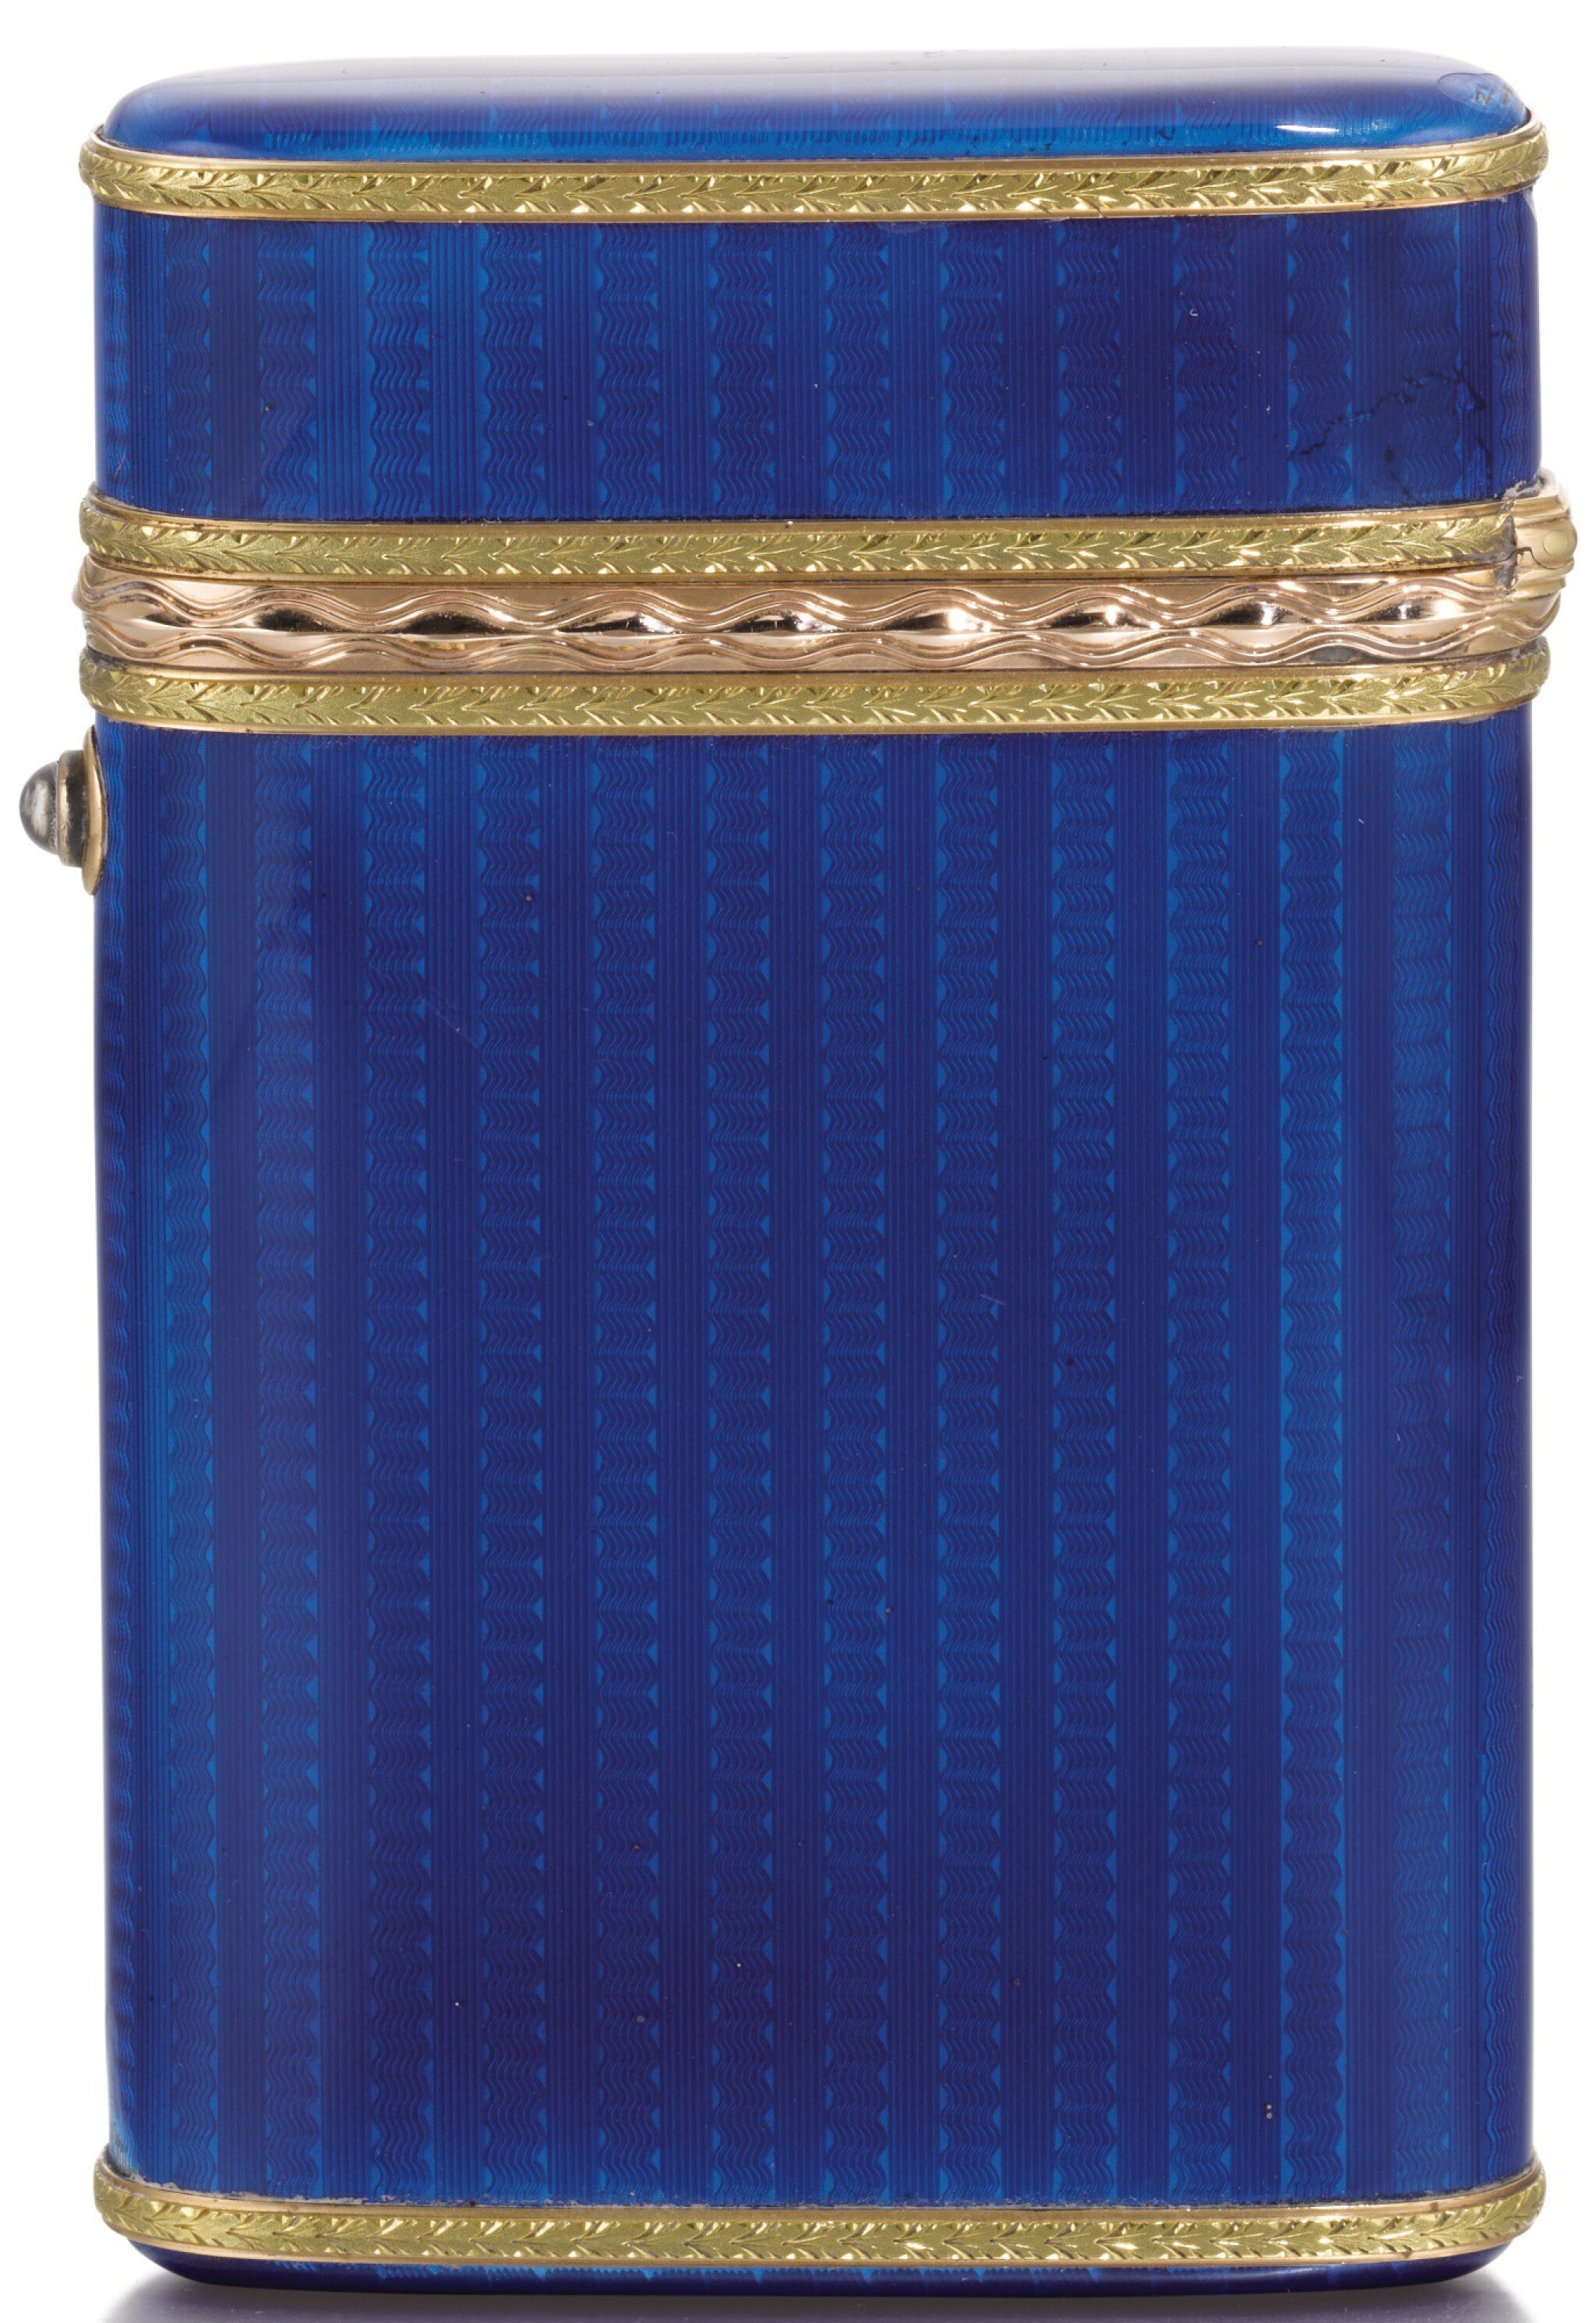 View full screen - View 1 of Lot 290. A Fabergé Imperial two-colour gold-mounted guilloché enamel cigarette case, workmaster Michael Perchin, St Petersburg, 1899-1903.